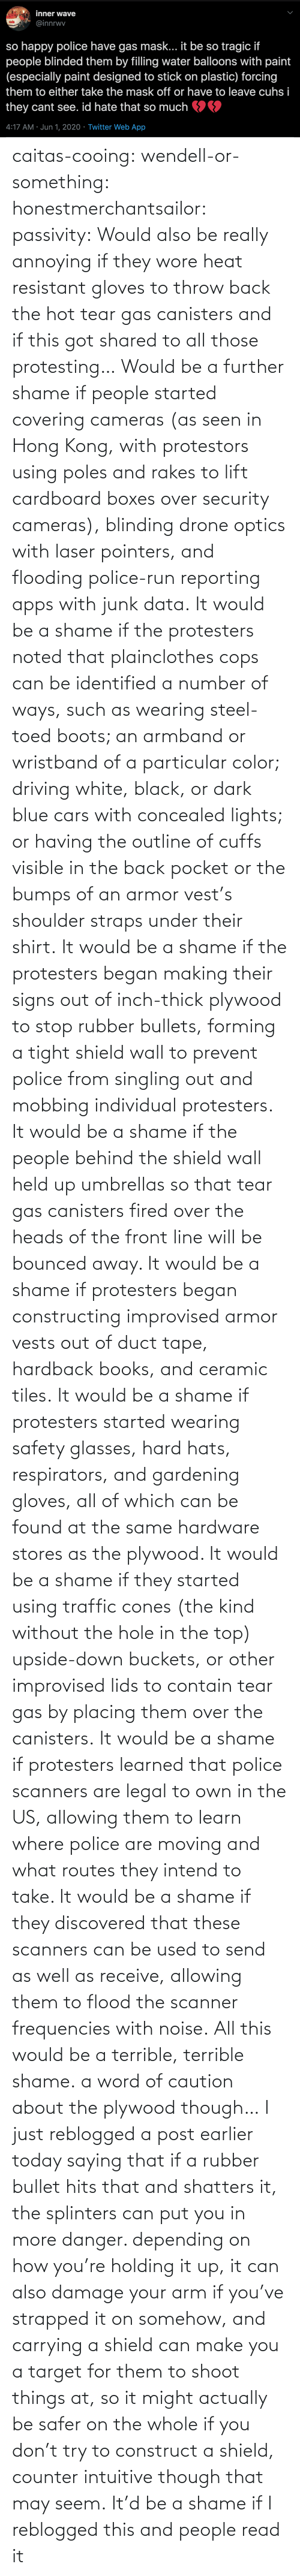 org: caitas-cooing:  wendell-or-something: honestmerchantsailor:  passivity: Would also be really annoying if they wore heat resistant gloves to throw back the hot tear gas canisters and if this got shared to all those protesting… Would be a further shame if people started covering cameras (as seen in Hong Kong, with protestors using poles and rakes to lift cardboard boxes over security cameras), blinding drone optics with laser pointers, and flooding police-run reporting apps with junk data. It would be a shame if the protesters noted that plainclothes cops can be identified a number of ways, such as wearing steel-toed boots; an armband or wristband of a particular color; driving white, black, or dark blue cars with concealed lights; or having the outline of cuffs visible in the back pocket or the bumps of an armor vest's shoulder straps under their shirt. It would be a shame if the protesters began making their signs out of inch-thick plywood to stop rubber bullets, forming a tight shield wall to prevent police from singling out and mobbing individual protesters. It would be a shame if the people behind the shield wall held up umbrellas so that tear gas canisters fired over the heads of the front line will be bounced away. It would be a shame if protesters began constructing improvised armor vests out of duct tape, hardback books, and ceramic tiles. It would be a shame if protesters started wearing safety glasses, hard hats, respirators, and gardening gloves, all of which can be found at the same hardware stores as the plywood. It would be a shame if they started using traffic cones (the kind without the hole in the top) upside-down buckets, or other improvised lids to contain tear gas by placing them over the canisters. It would be a shame if protesters learned that police scanners are legal to own in the US, allowing them to learn where police are moving and what routes they intend to take. It would be a shame if they discovered that these scanners can be used to send as well as receive, allowing them to flood the scanner frequencies with noise. All this would be a terrible, terrible shame.    a word of caution about the plywood though… I just reblogged a post earlier today saying that if a rubber bullet hits that and shatters it, the splinters can put you in more danger. depending on how you're holding it up, it can also damage your arm if you've strapped it on somehow, and carrying a shield can make you a target for them to shoot things at, so it might actually be safer on the whole if you don't try to construct a shield, counter intuitive though that may seem.    It'd be a shame if I reblogged this and people read it